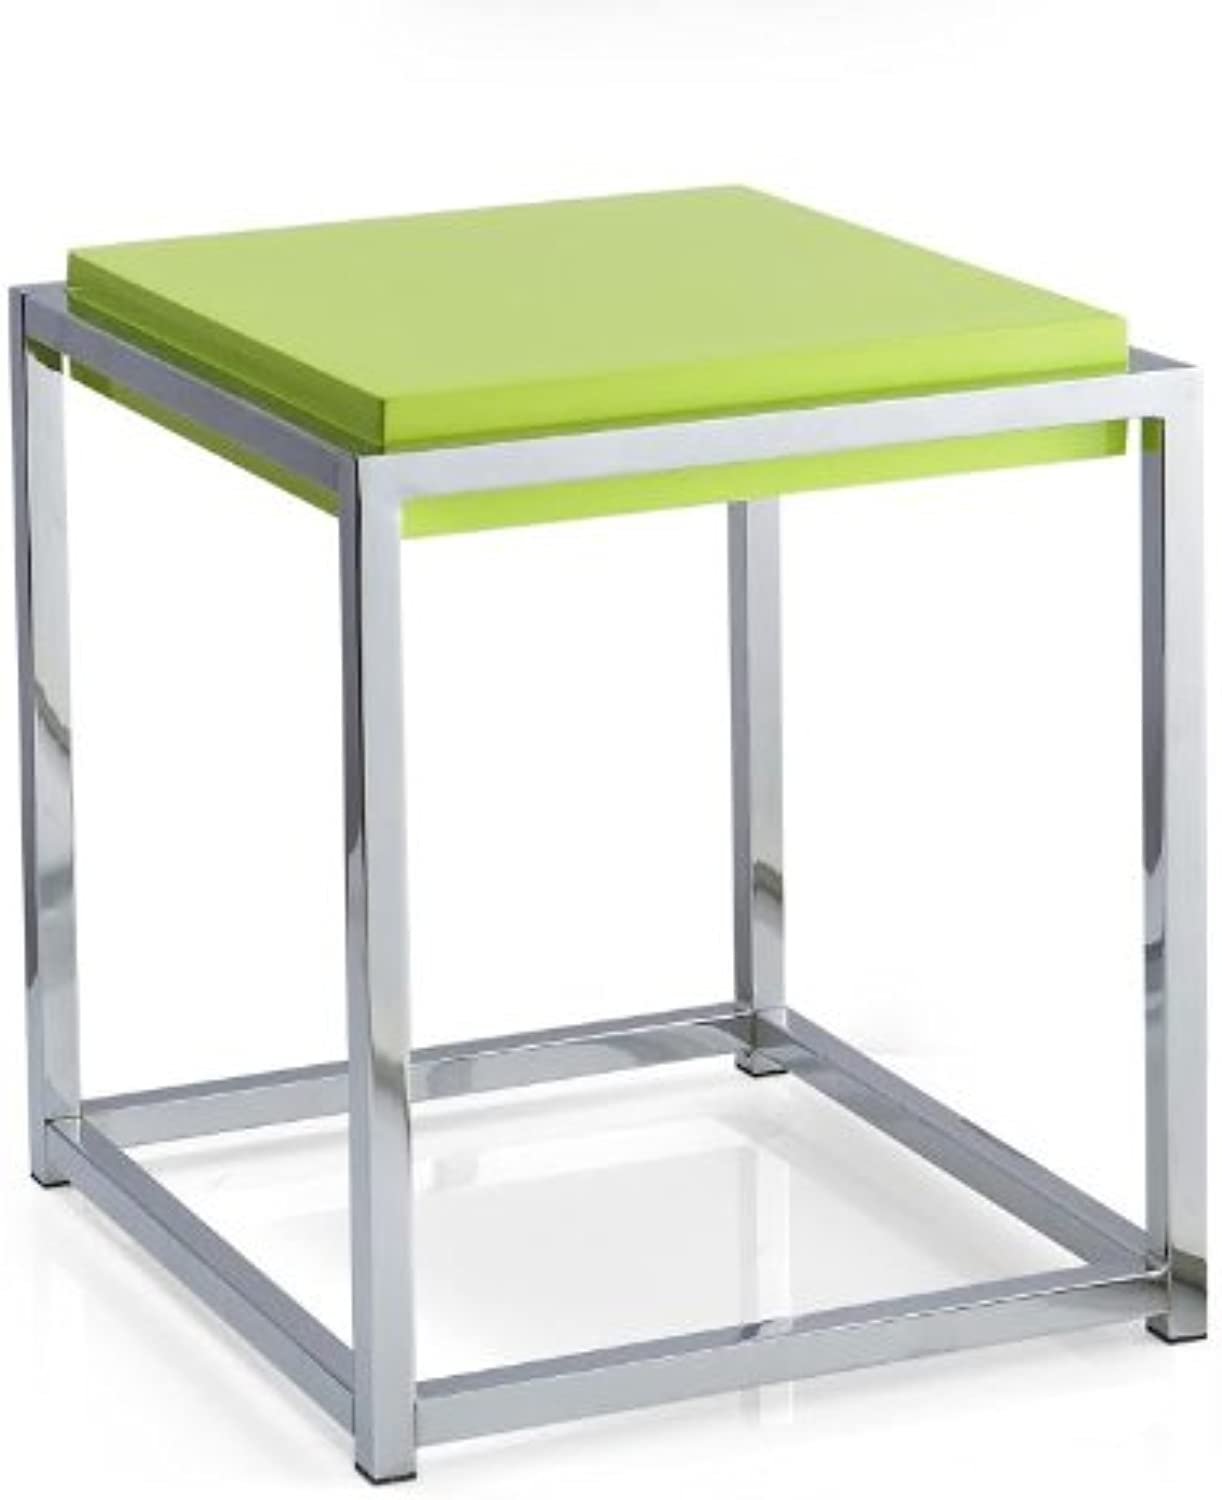 American Atelier Modern Accent Table, Green